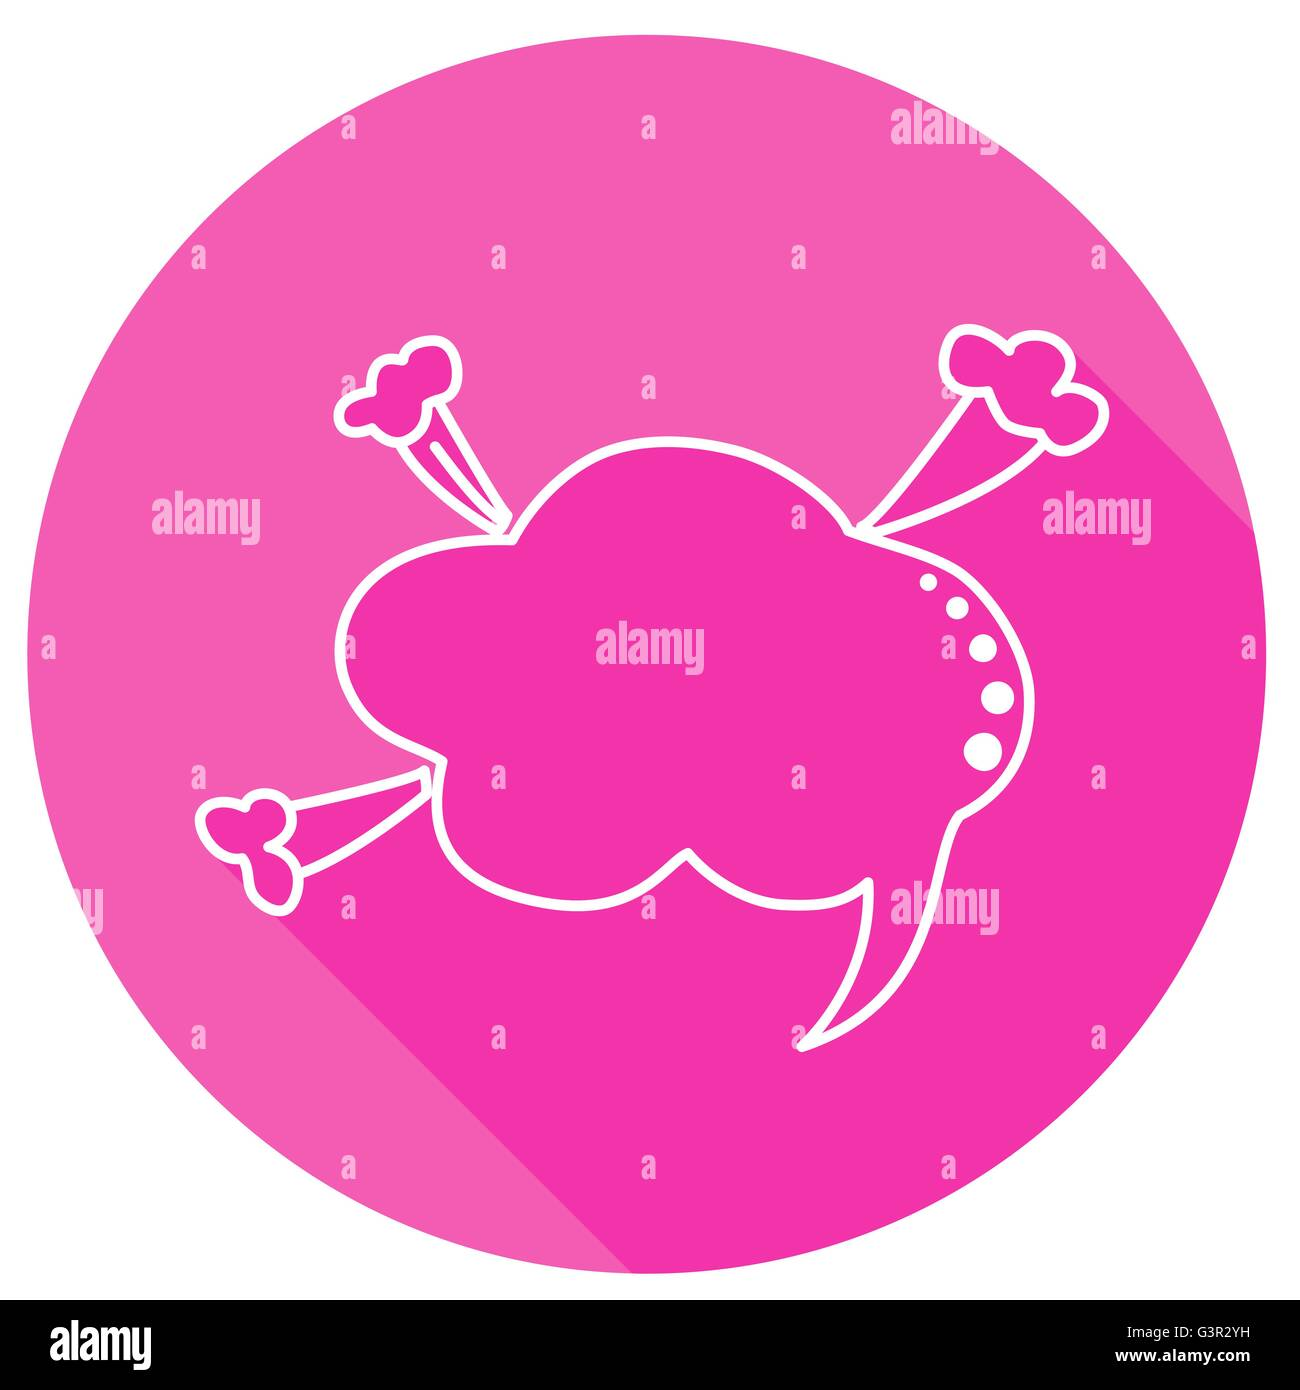 Speech bubbles in pink round with shadow in thin line style - Stock Image